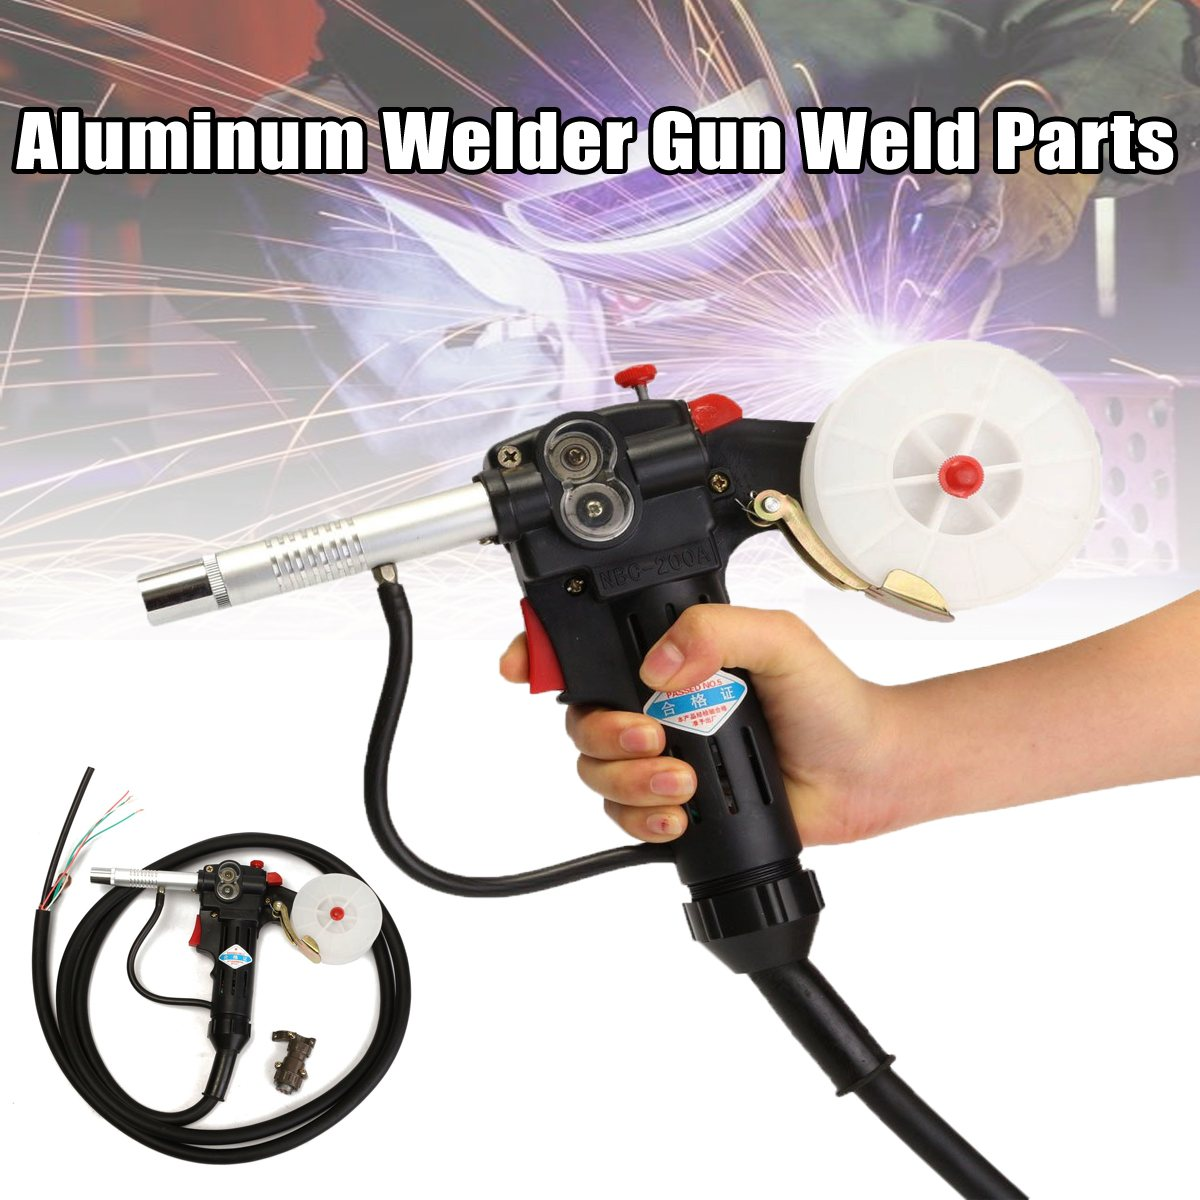 New NBC-200A Spool-Gun Gas Push Pull Aluminum Shielded Line-Drawing Welding Torch + 3meter Lead Cable spool gun gas shielded welding gun lead push pull aluminum torch with cable for high altitude operation